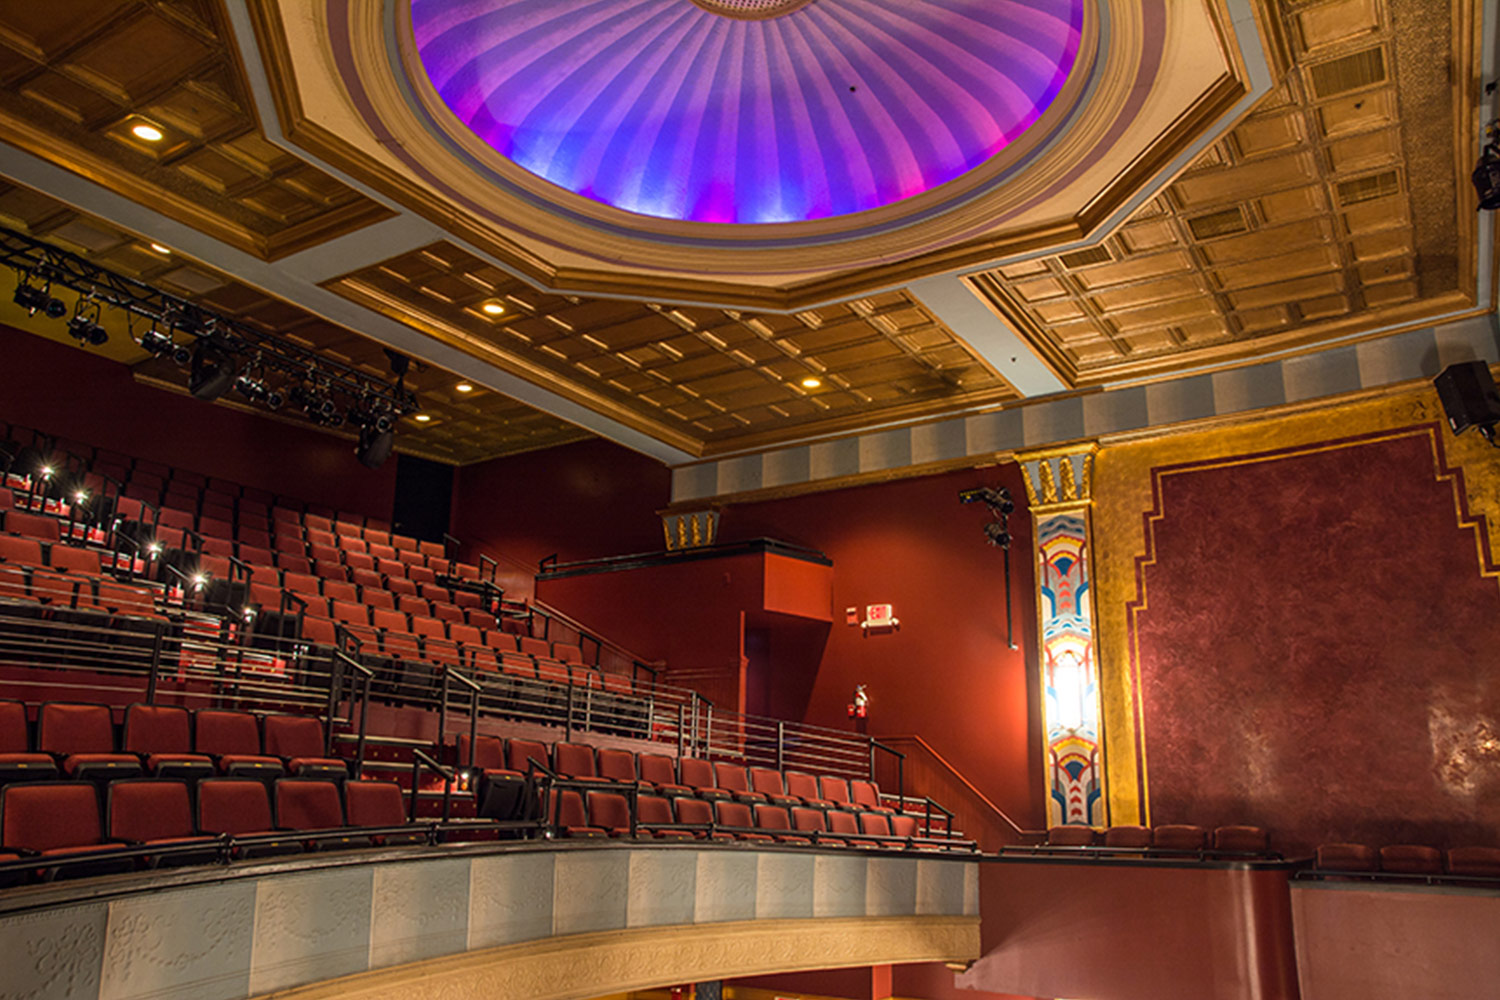 The Avalon Foundation, which runs the Avalon Theatre, secured the services of WSDG during a larger overall renovation initiative to update the theater's acoustics, production lighting, and audiovisual capabilities. Balcony and LED ceiling.